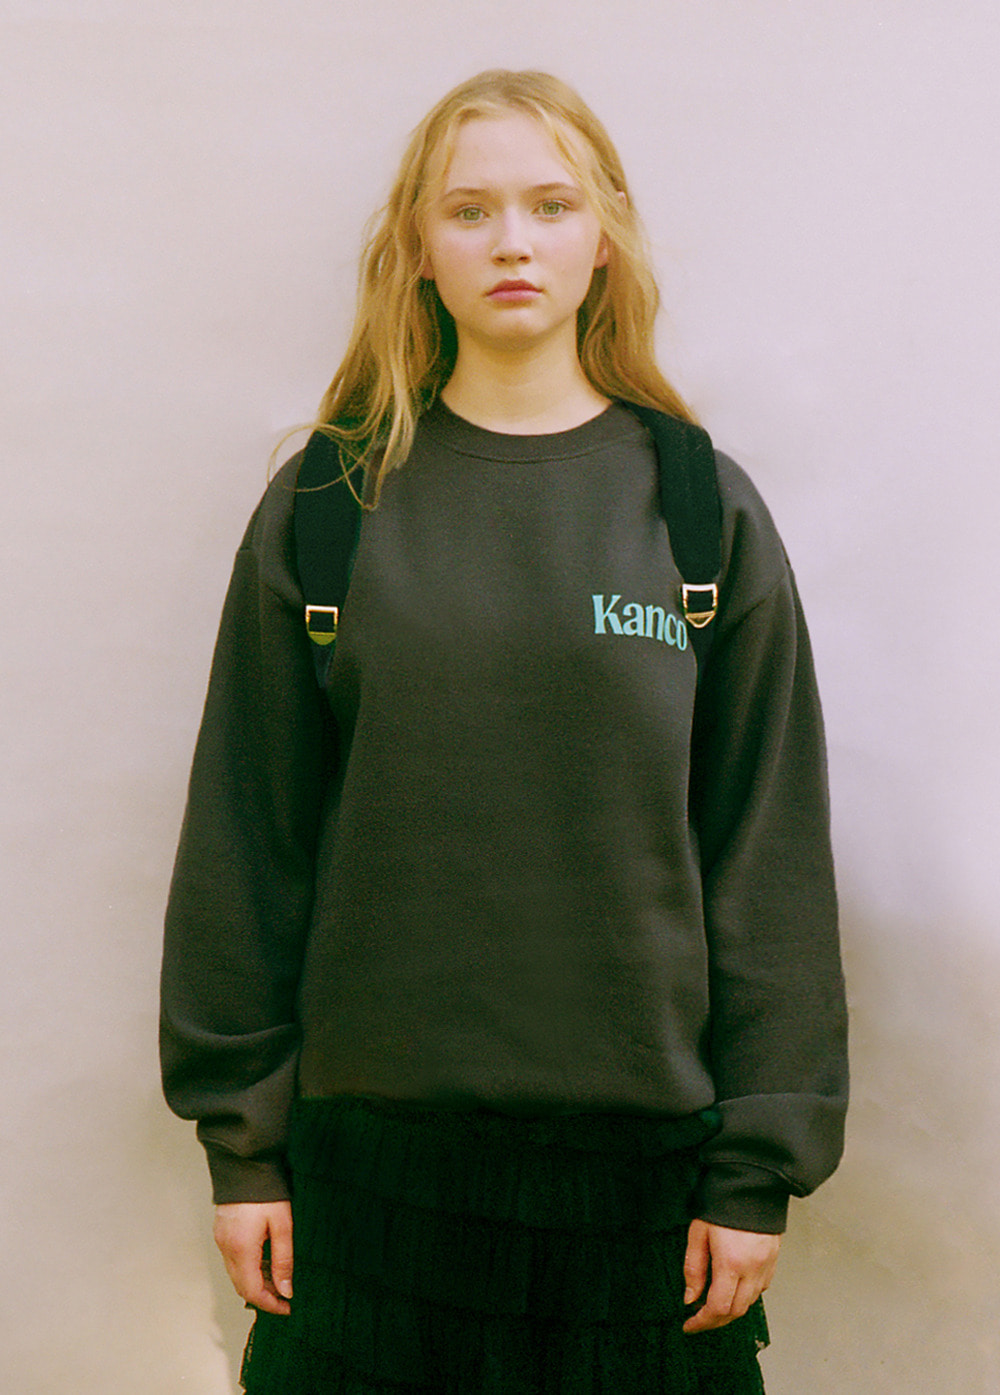 KANCO MINI SERIF LOGO SWEATSHIRT charcoal